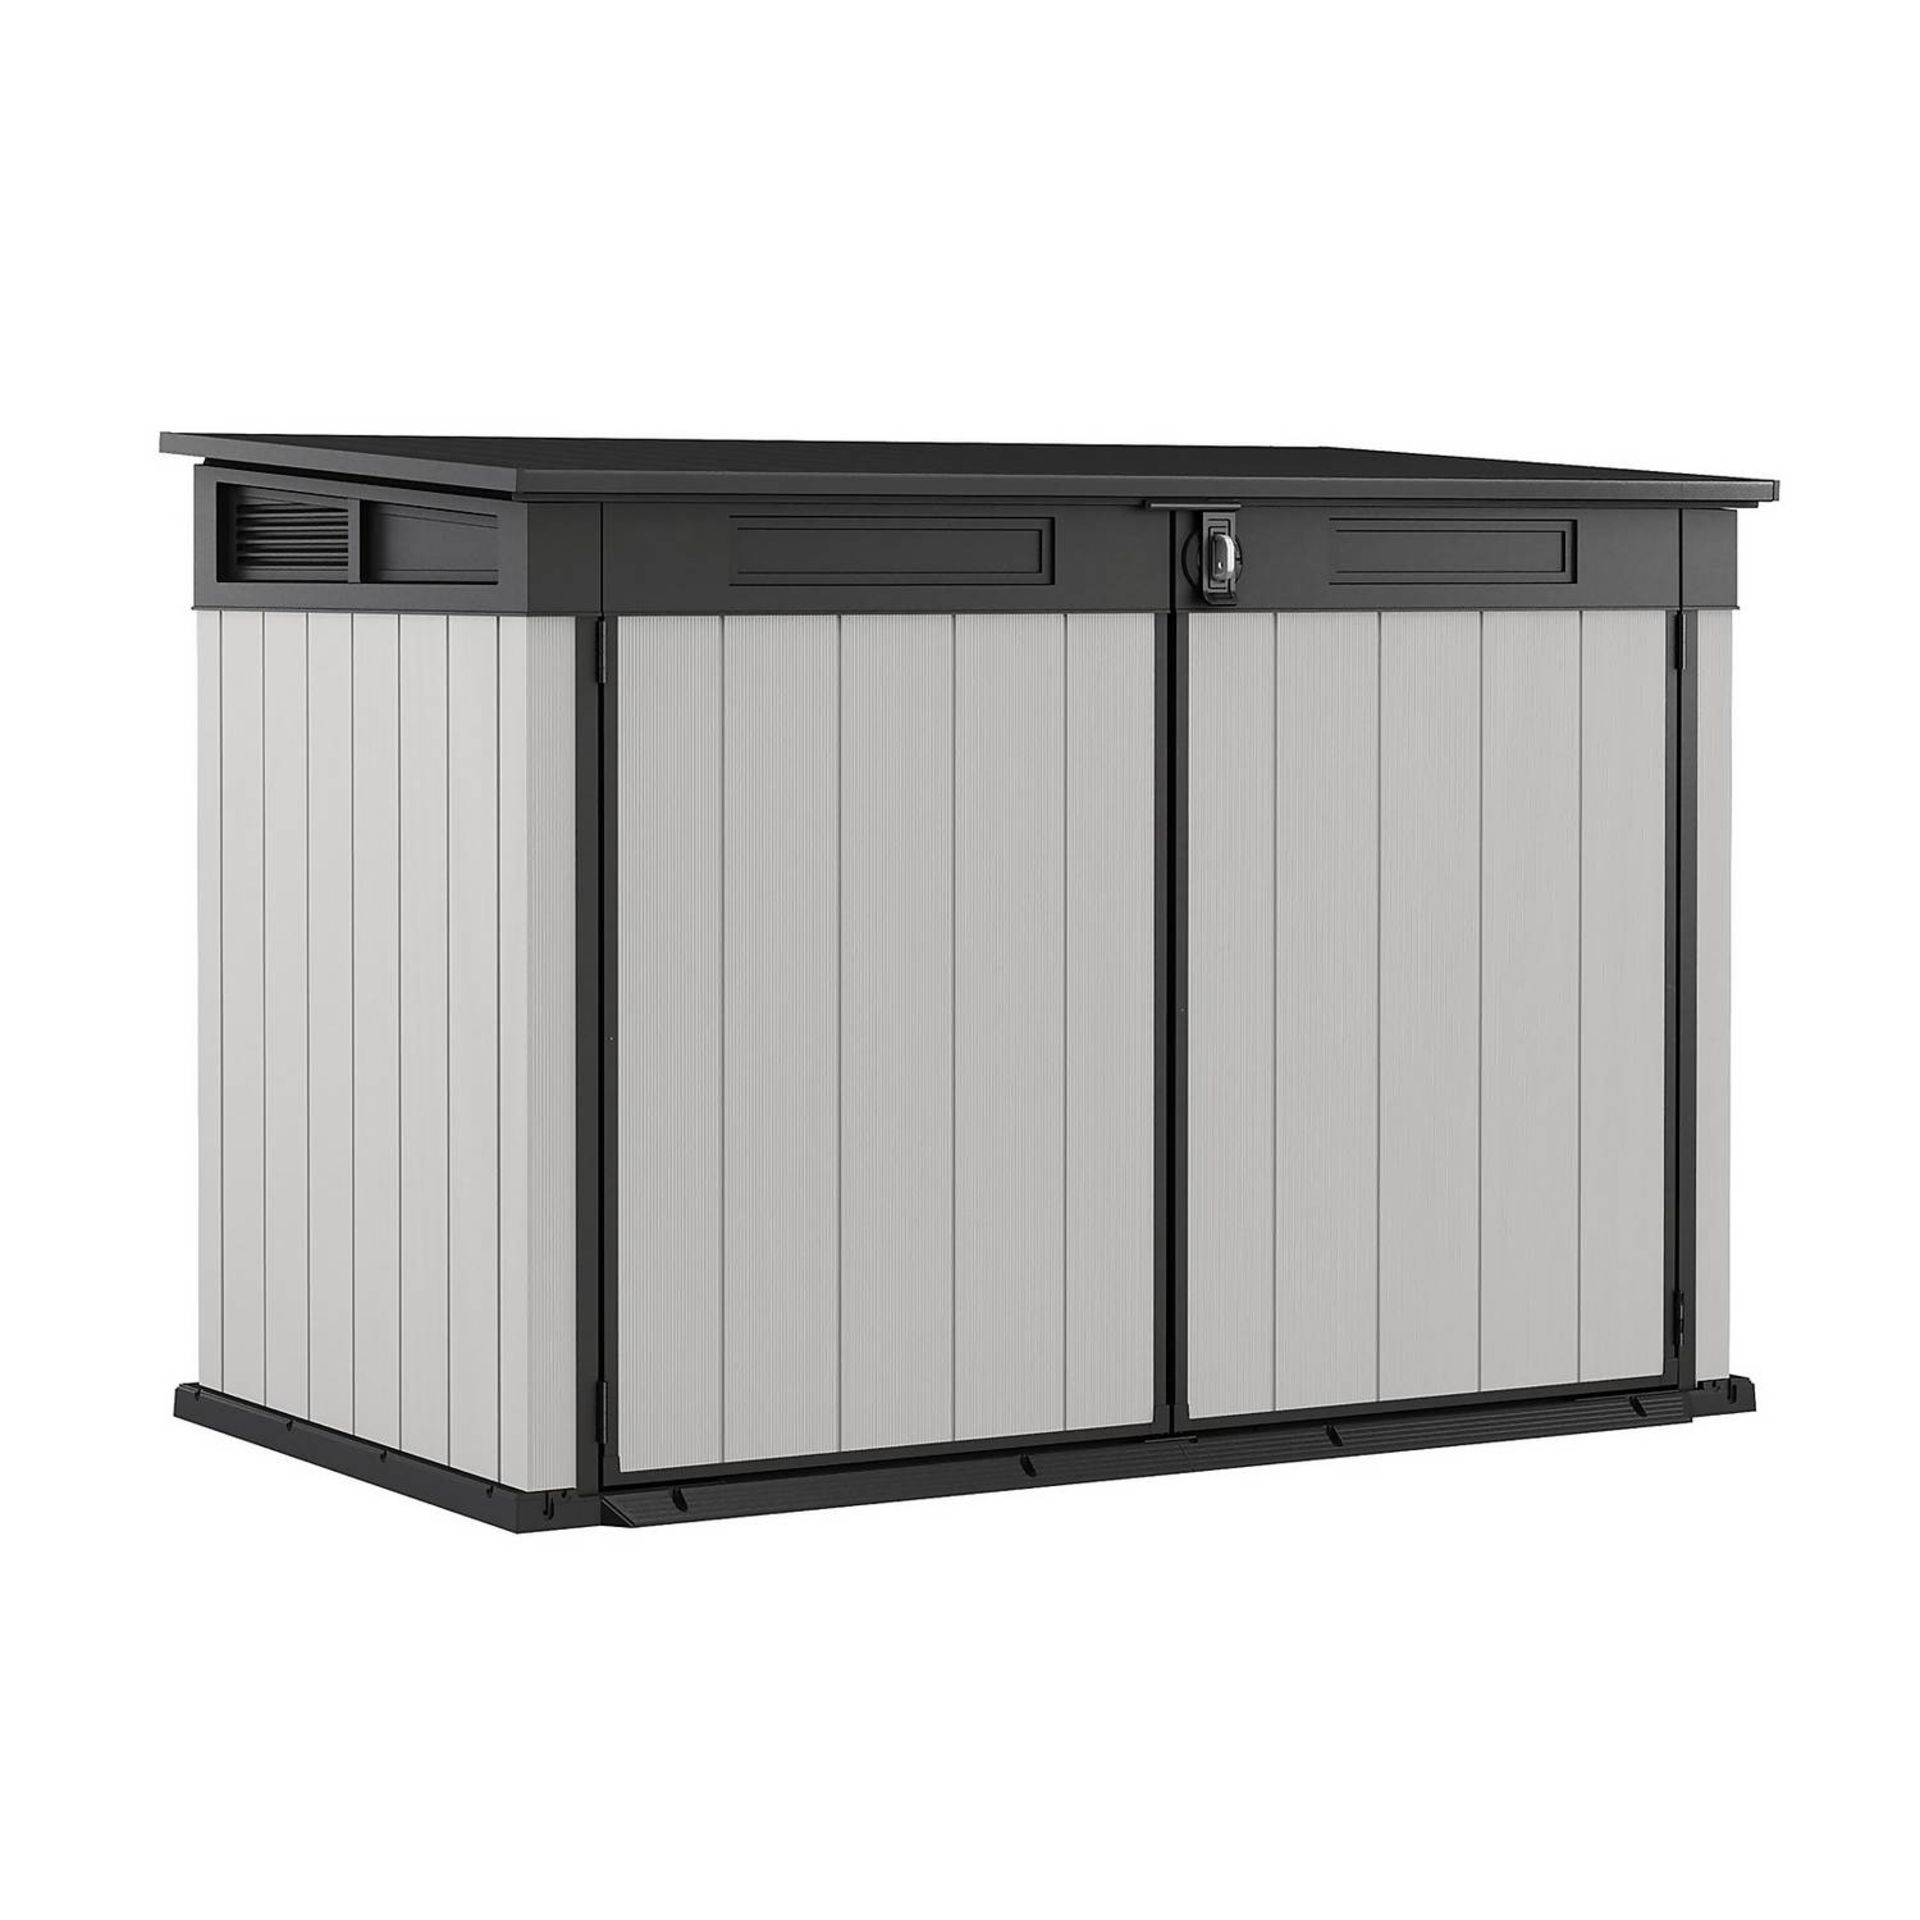 Mixed Triple pallet of Home & Garden products. Approx RRP £1910 - Image 4 of 7